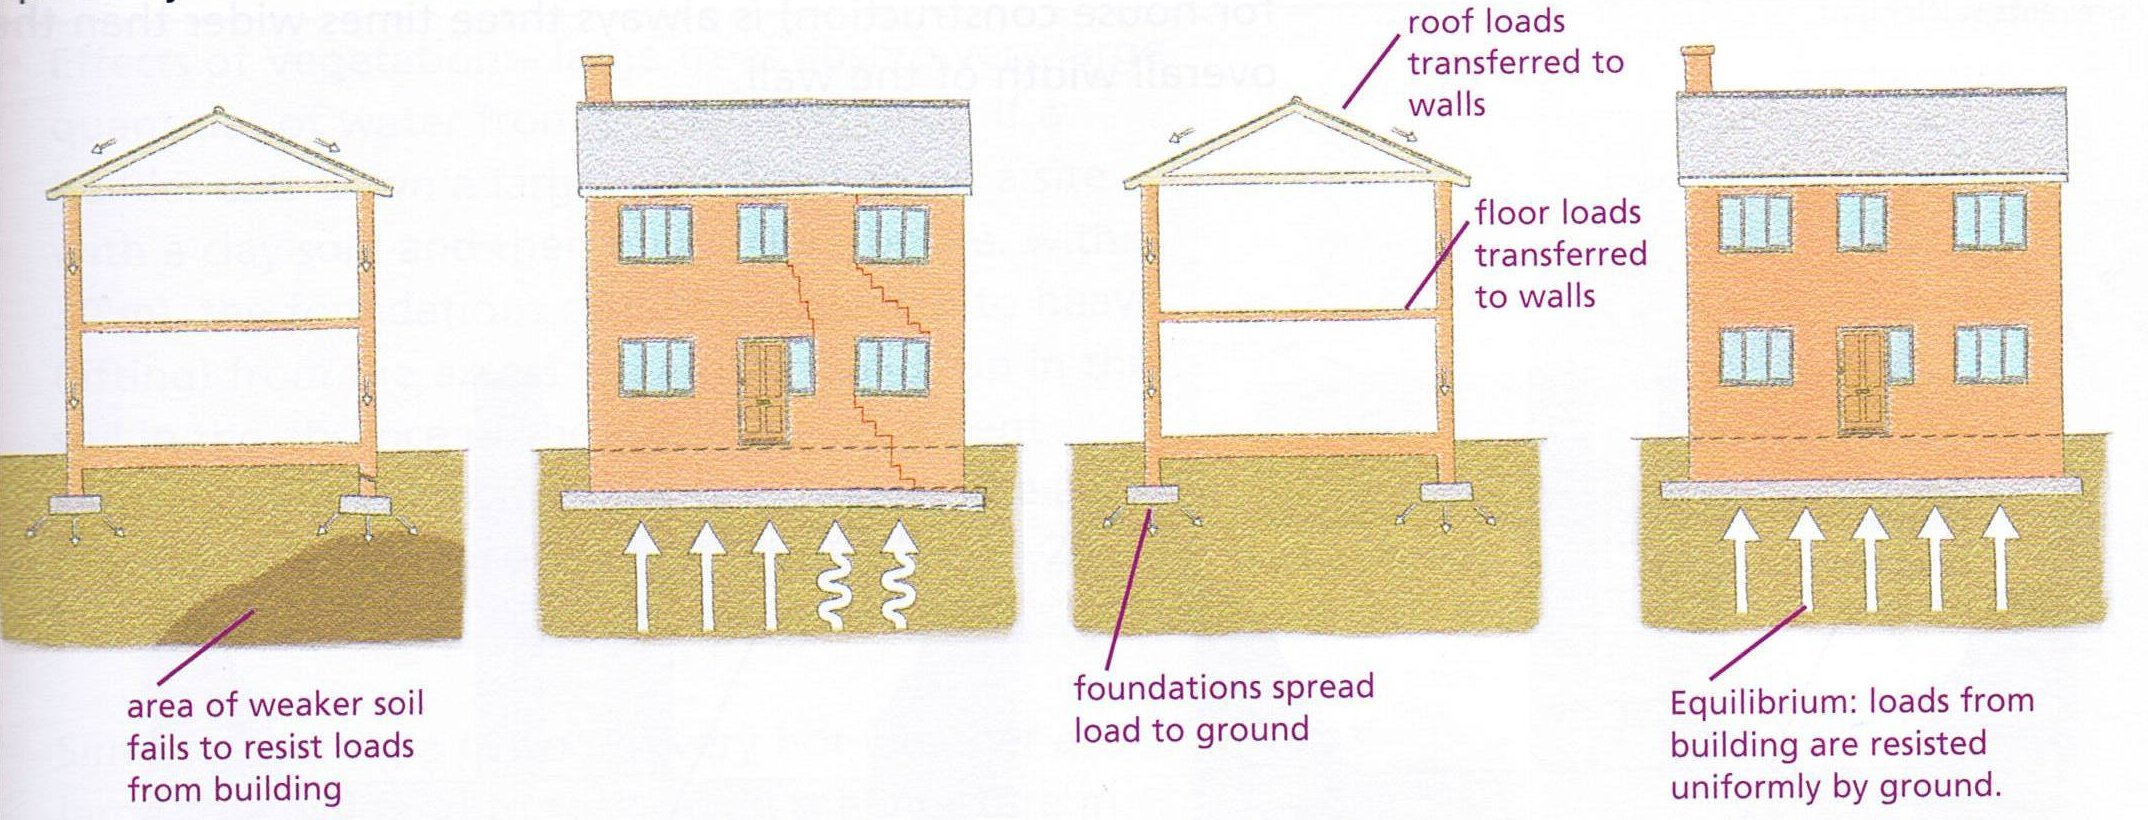 soil and foundations